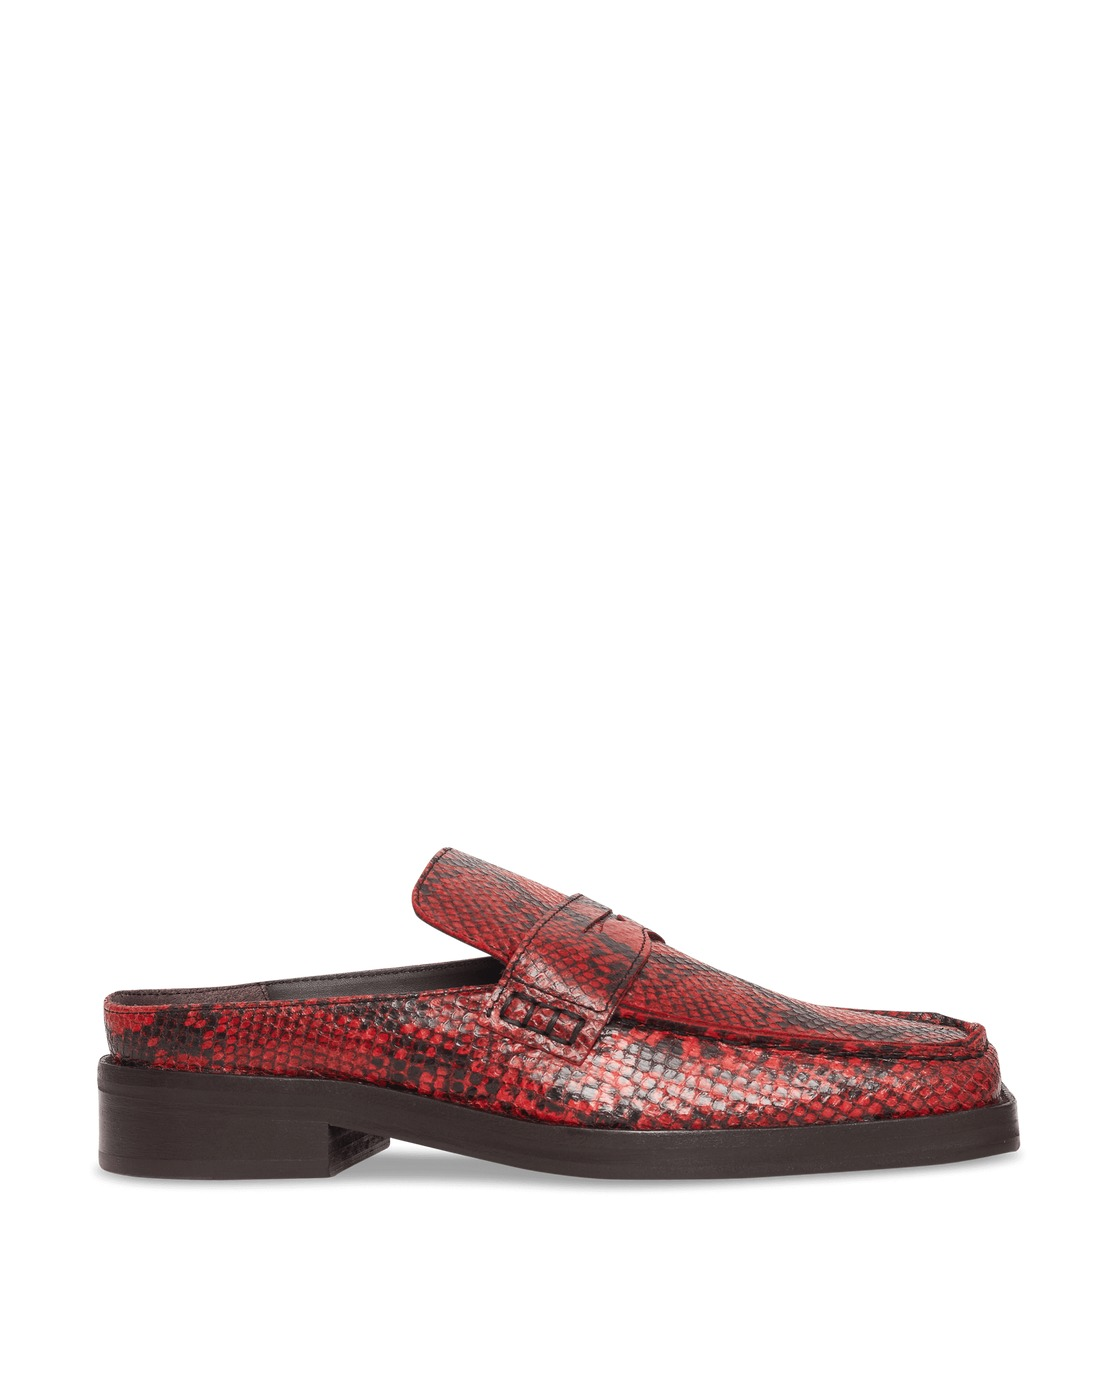 Martine Rose Arches Snake Mules Red/Red